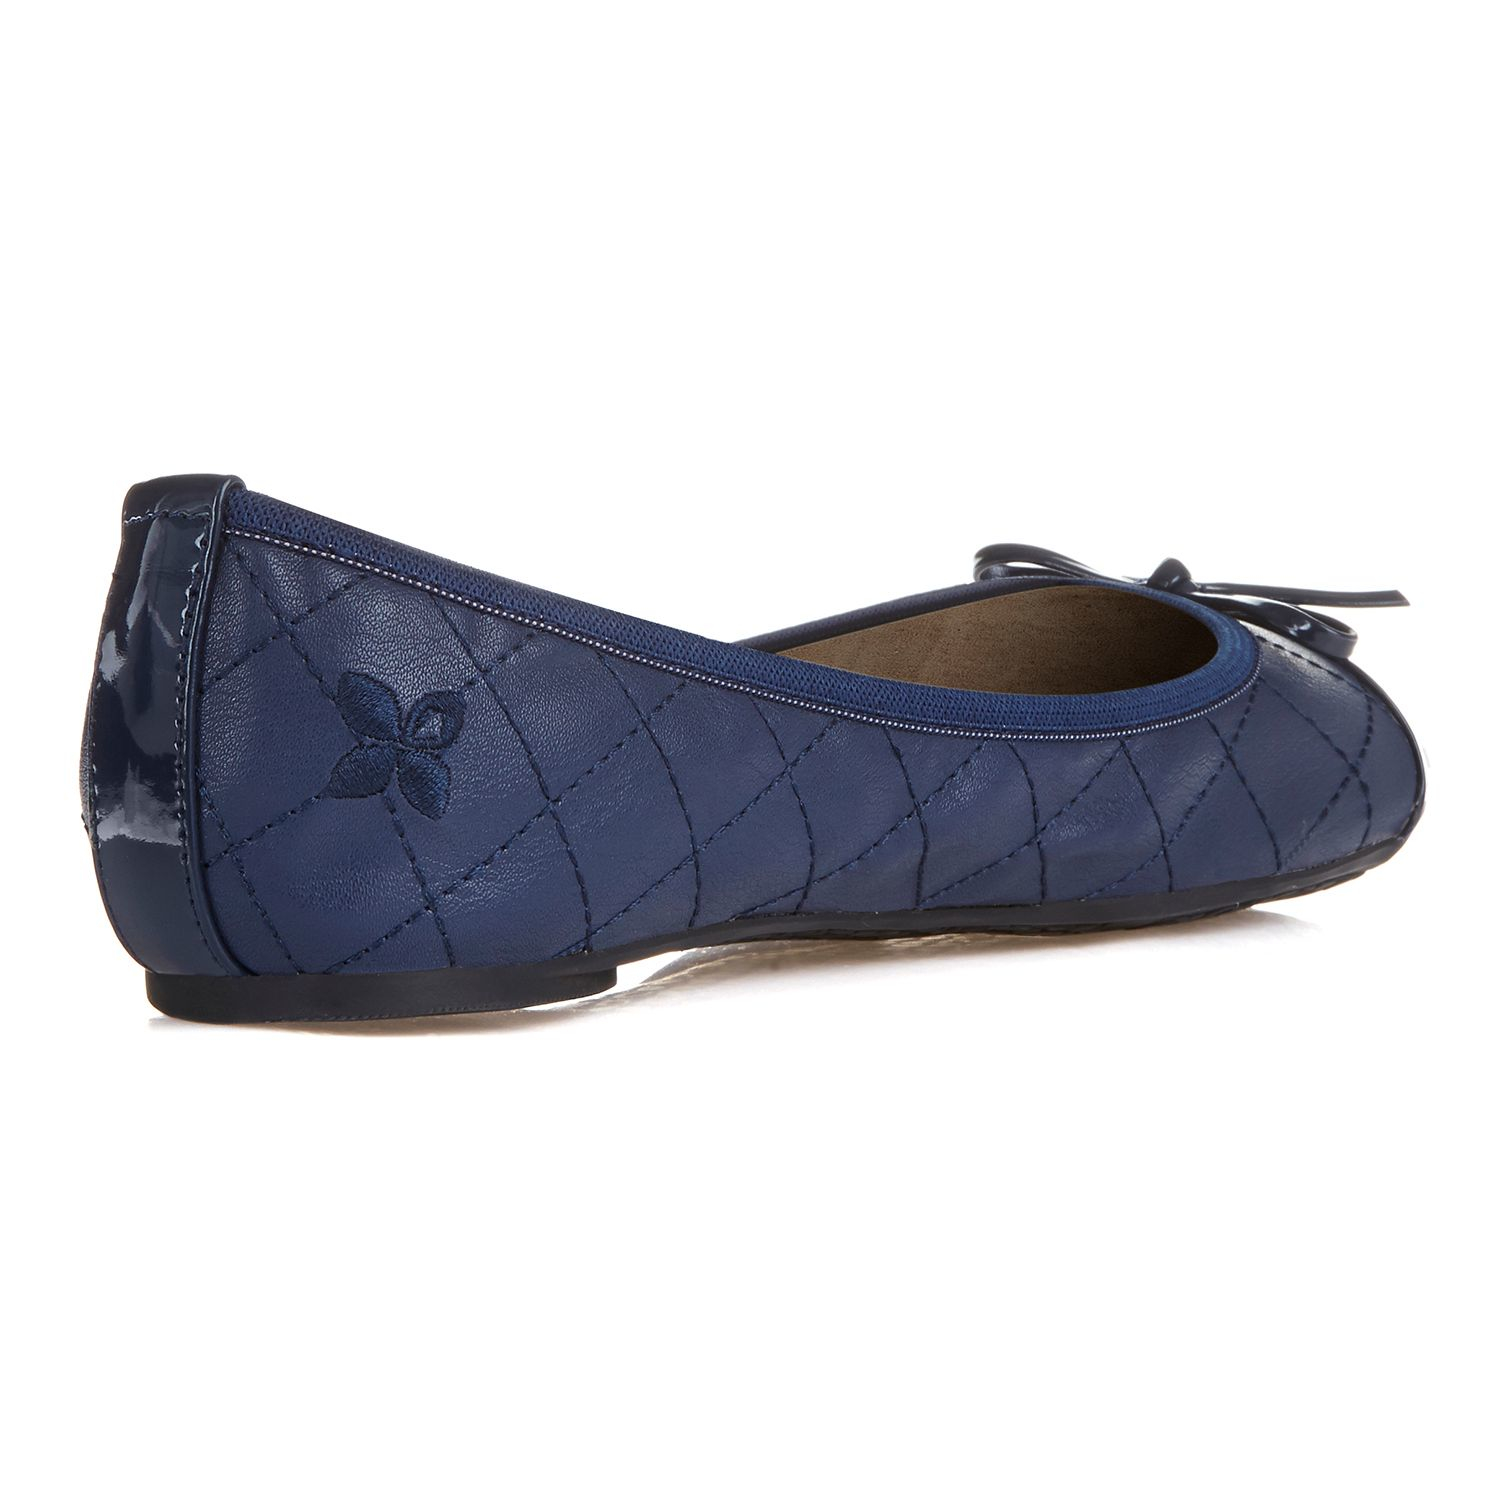 butterfly twists olivia foldable ballerina pumps in blue lyst. Black Bedroom Furniture Sets. Home Design Ideas